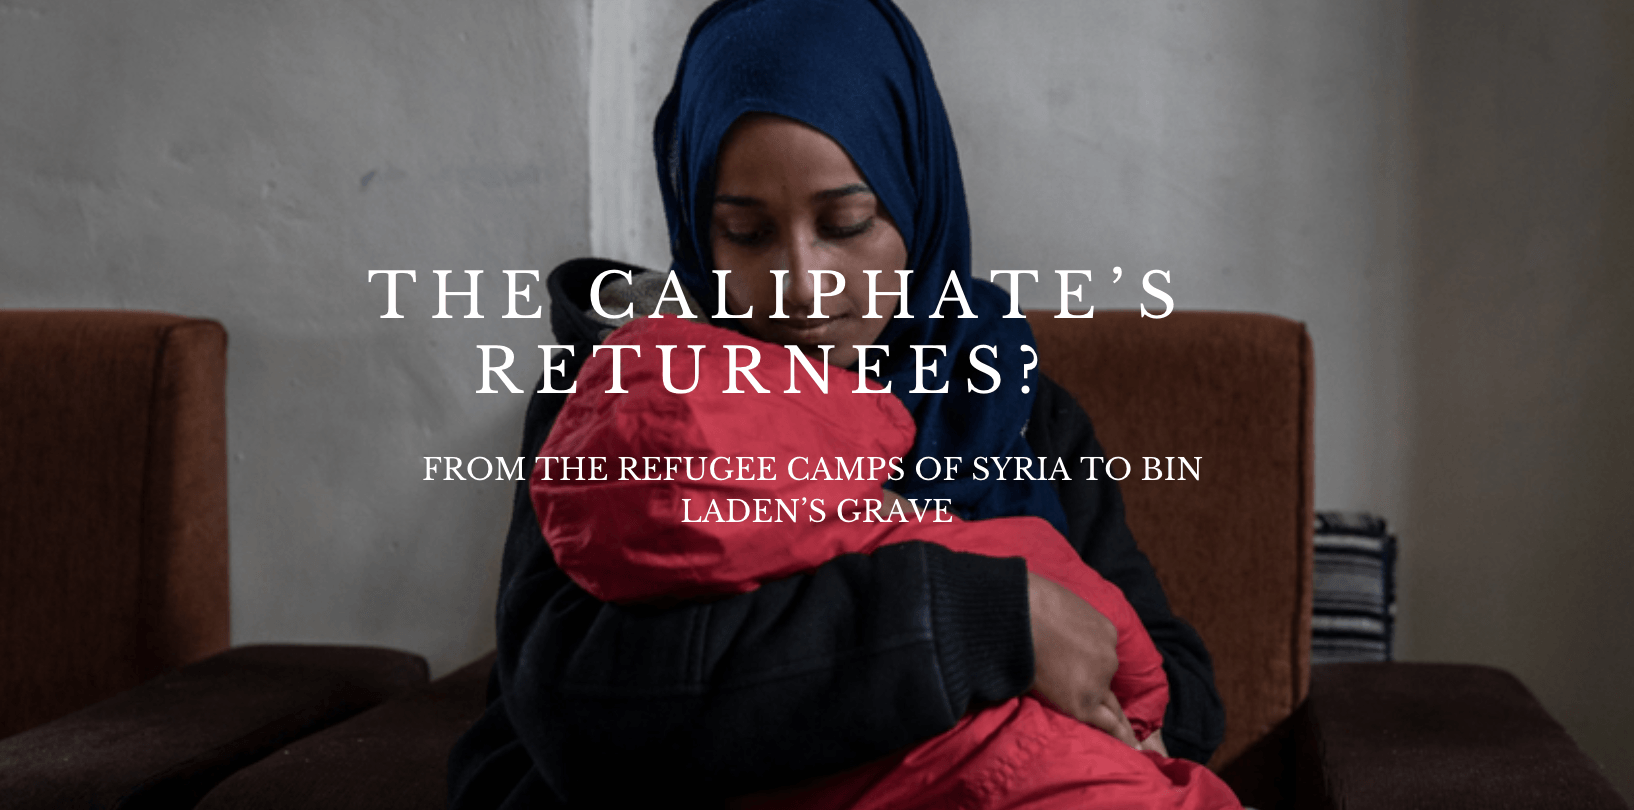 The Caliphate's Returnees?  From the Refugee Camps of Syria to bin Laden's Grave